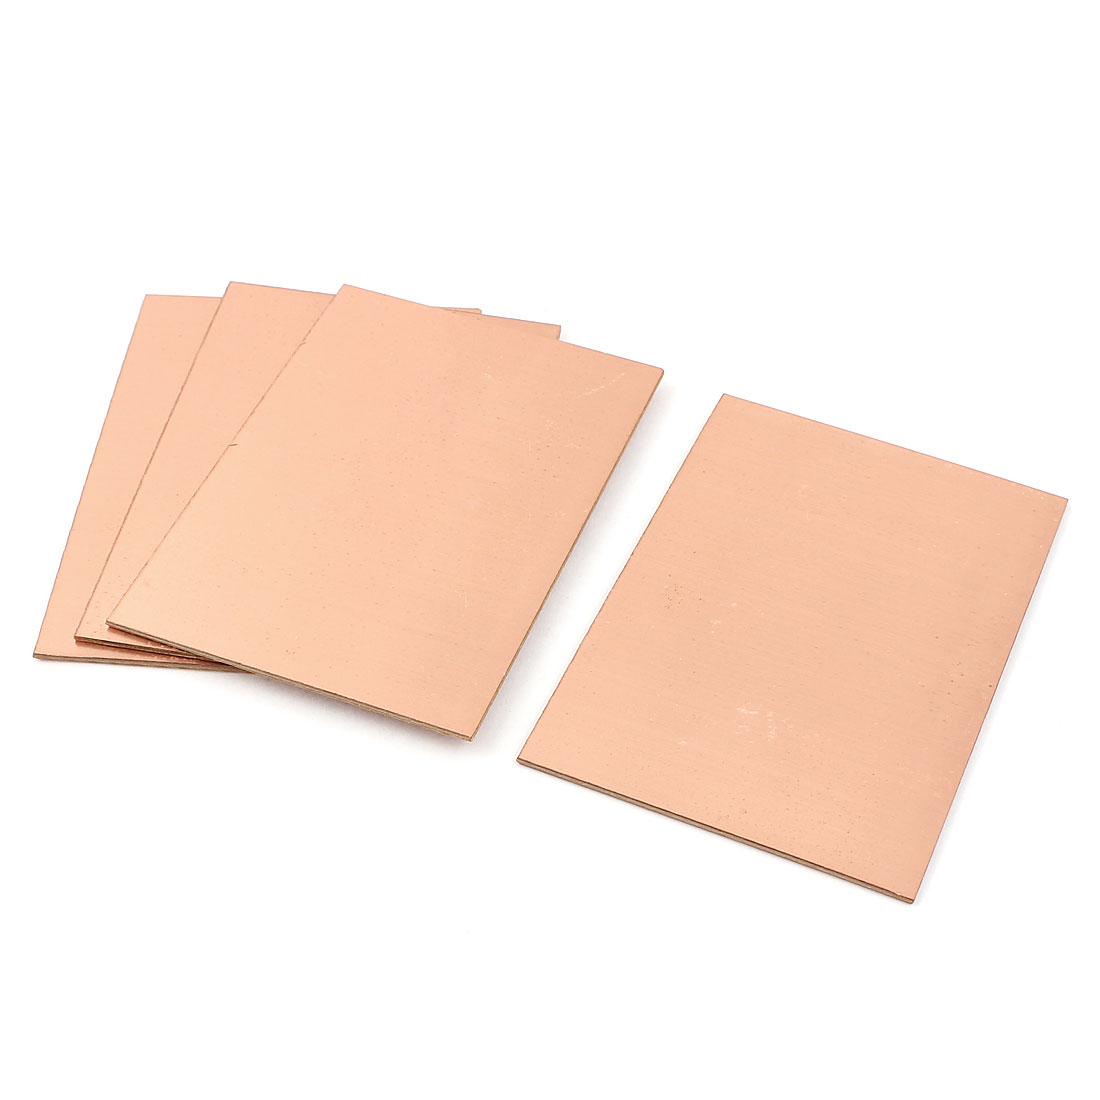 4pcs DIY Single Side Copper Clad Laminate PCB Board Plate 100 x 70 x 1.5mm